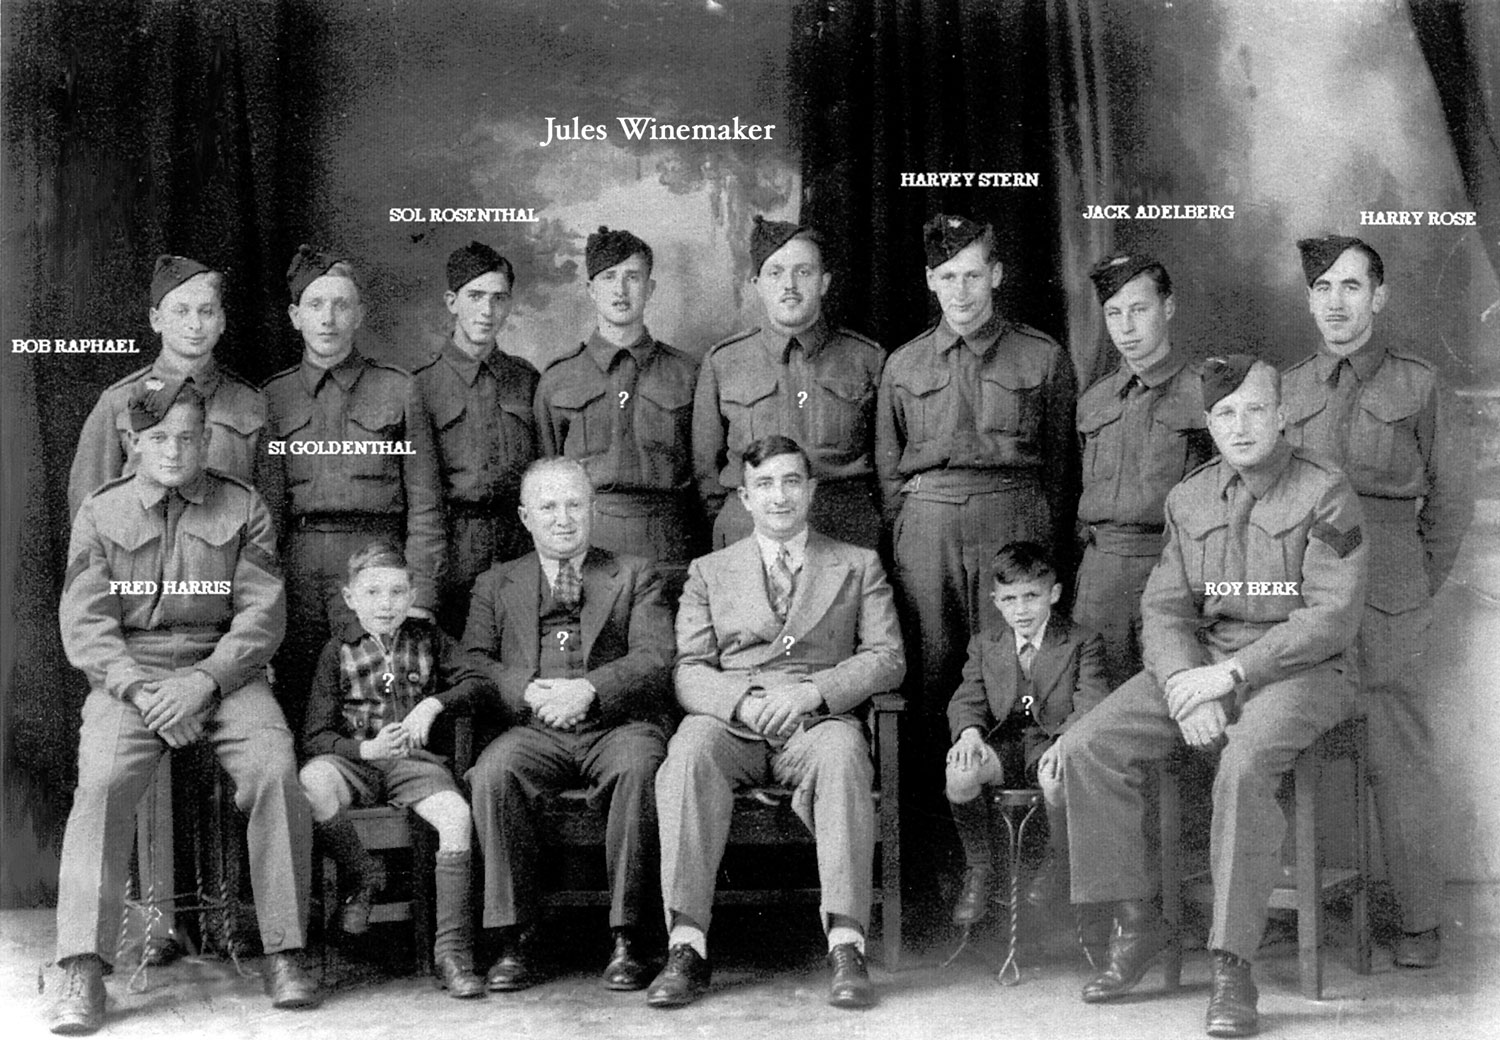 Photo of Freddy Harris and other Jewish Soldiers.